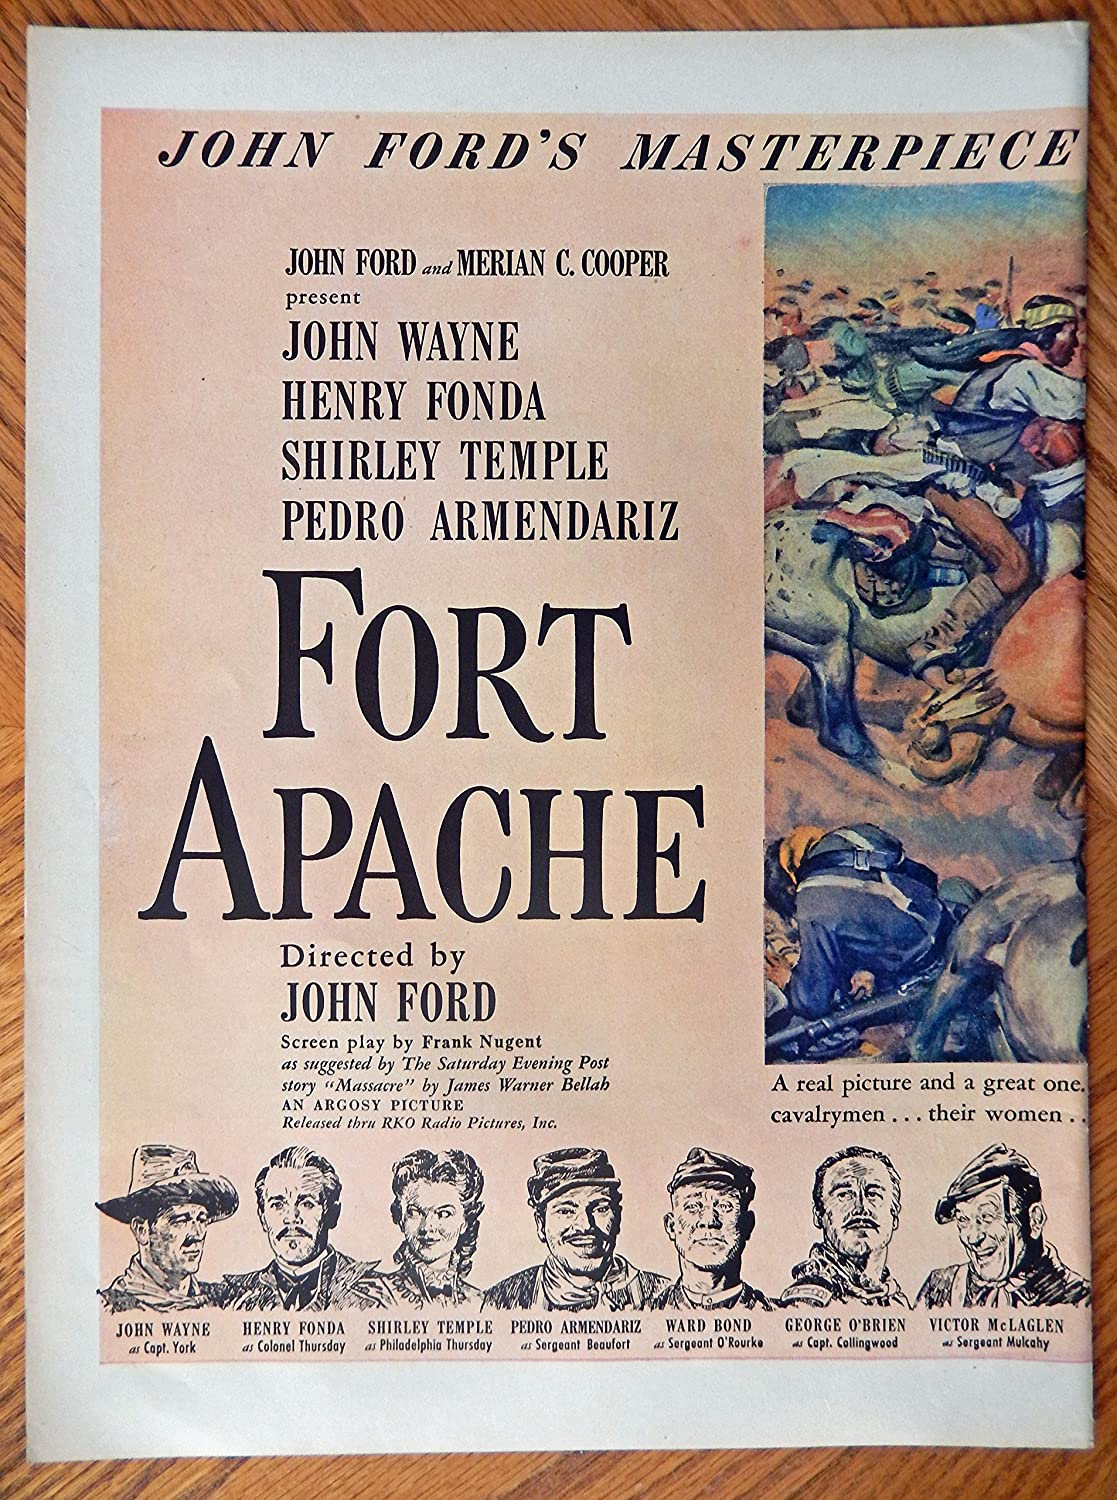 Amazon.com: Fort Apache, Original Movie advertisment 40s Print ad. Two Full Pages Color Illustration [two pages](John Ford movie--John Wayne, Henry Fonda, ...